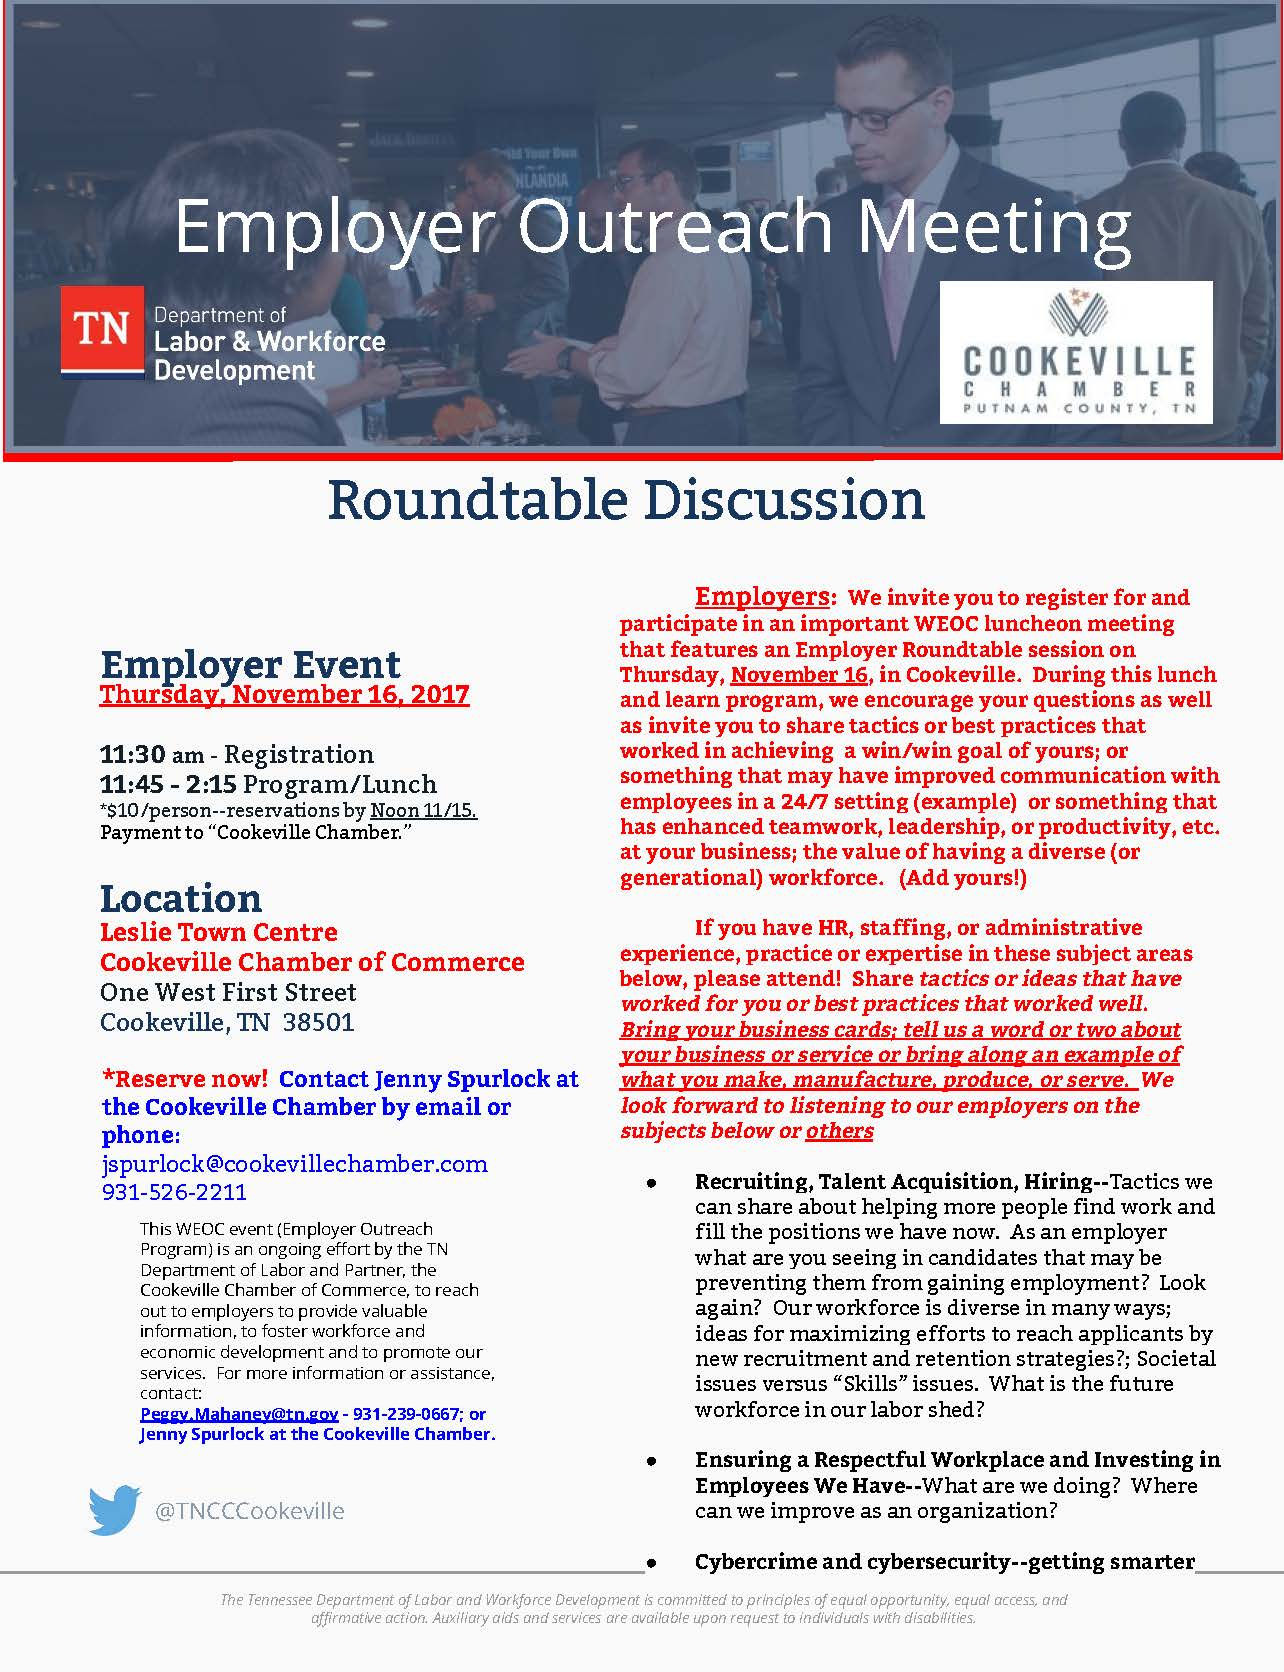 Round table discussion flyer - Round Table Discussion Flyer 22